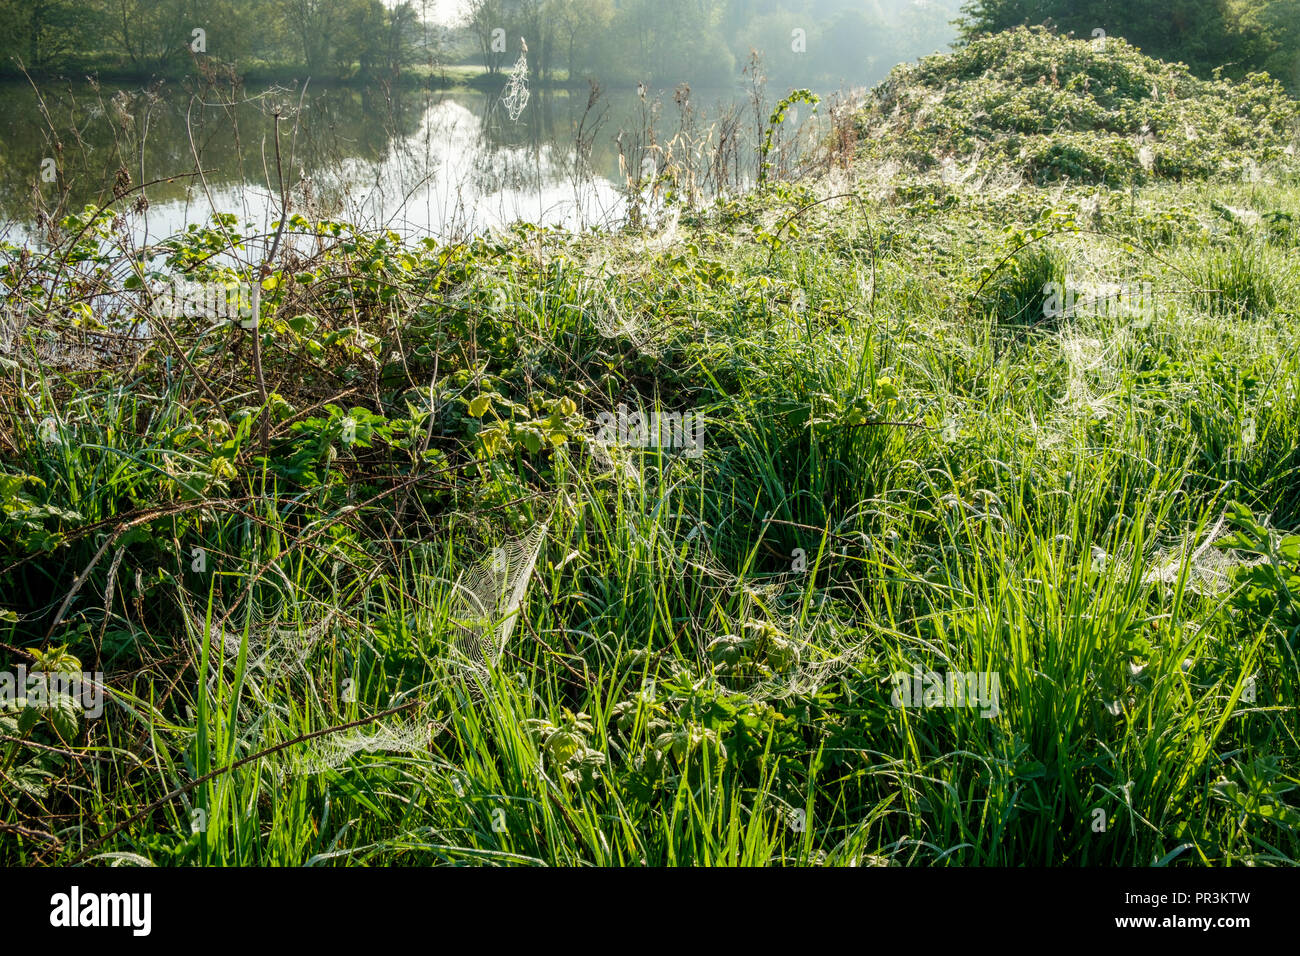 Early morning dew on spider's webs and grass by the River Trent, Nottinghamshire, England, UK - Stock Image